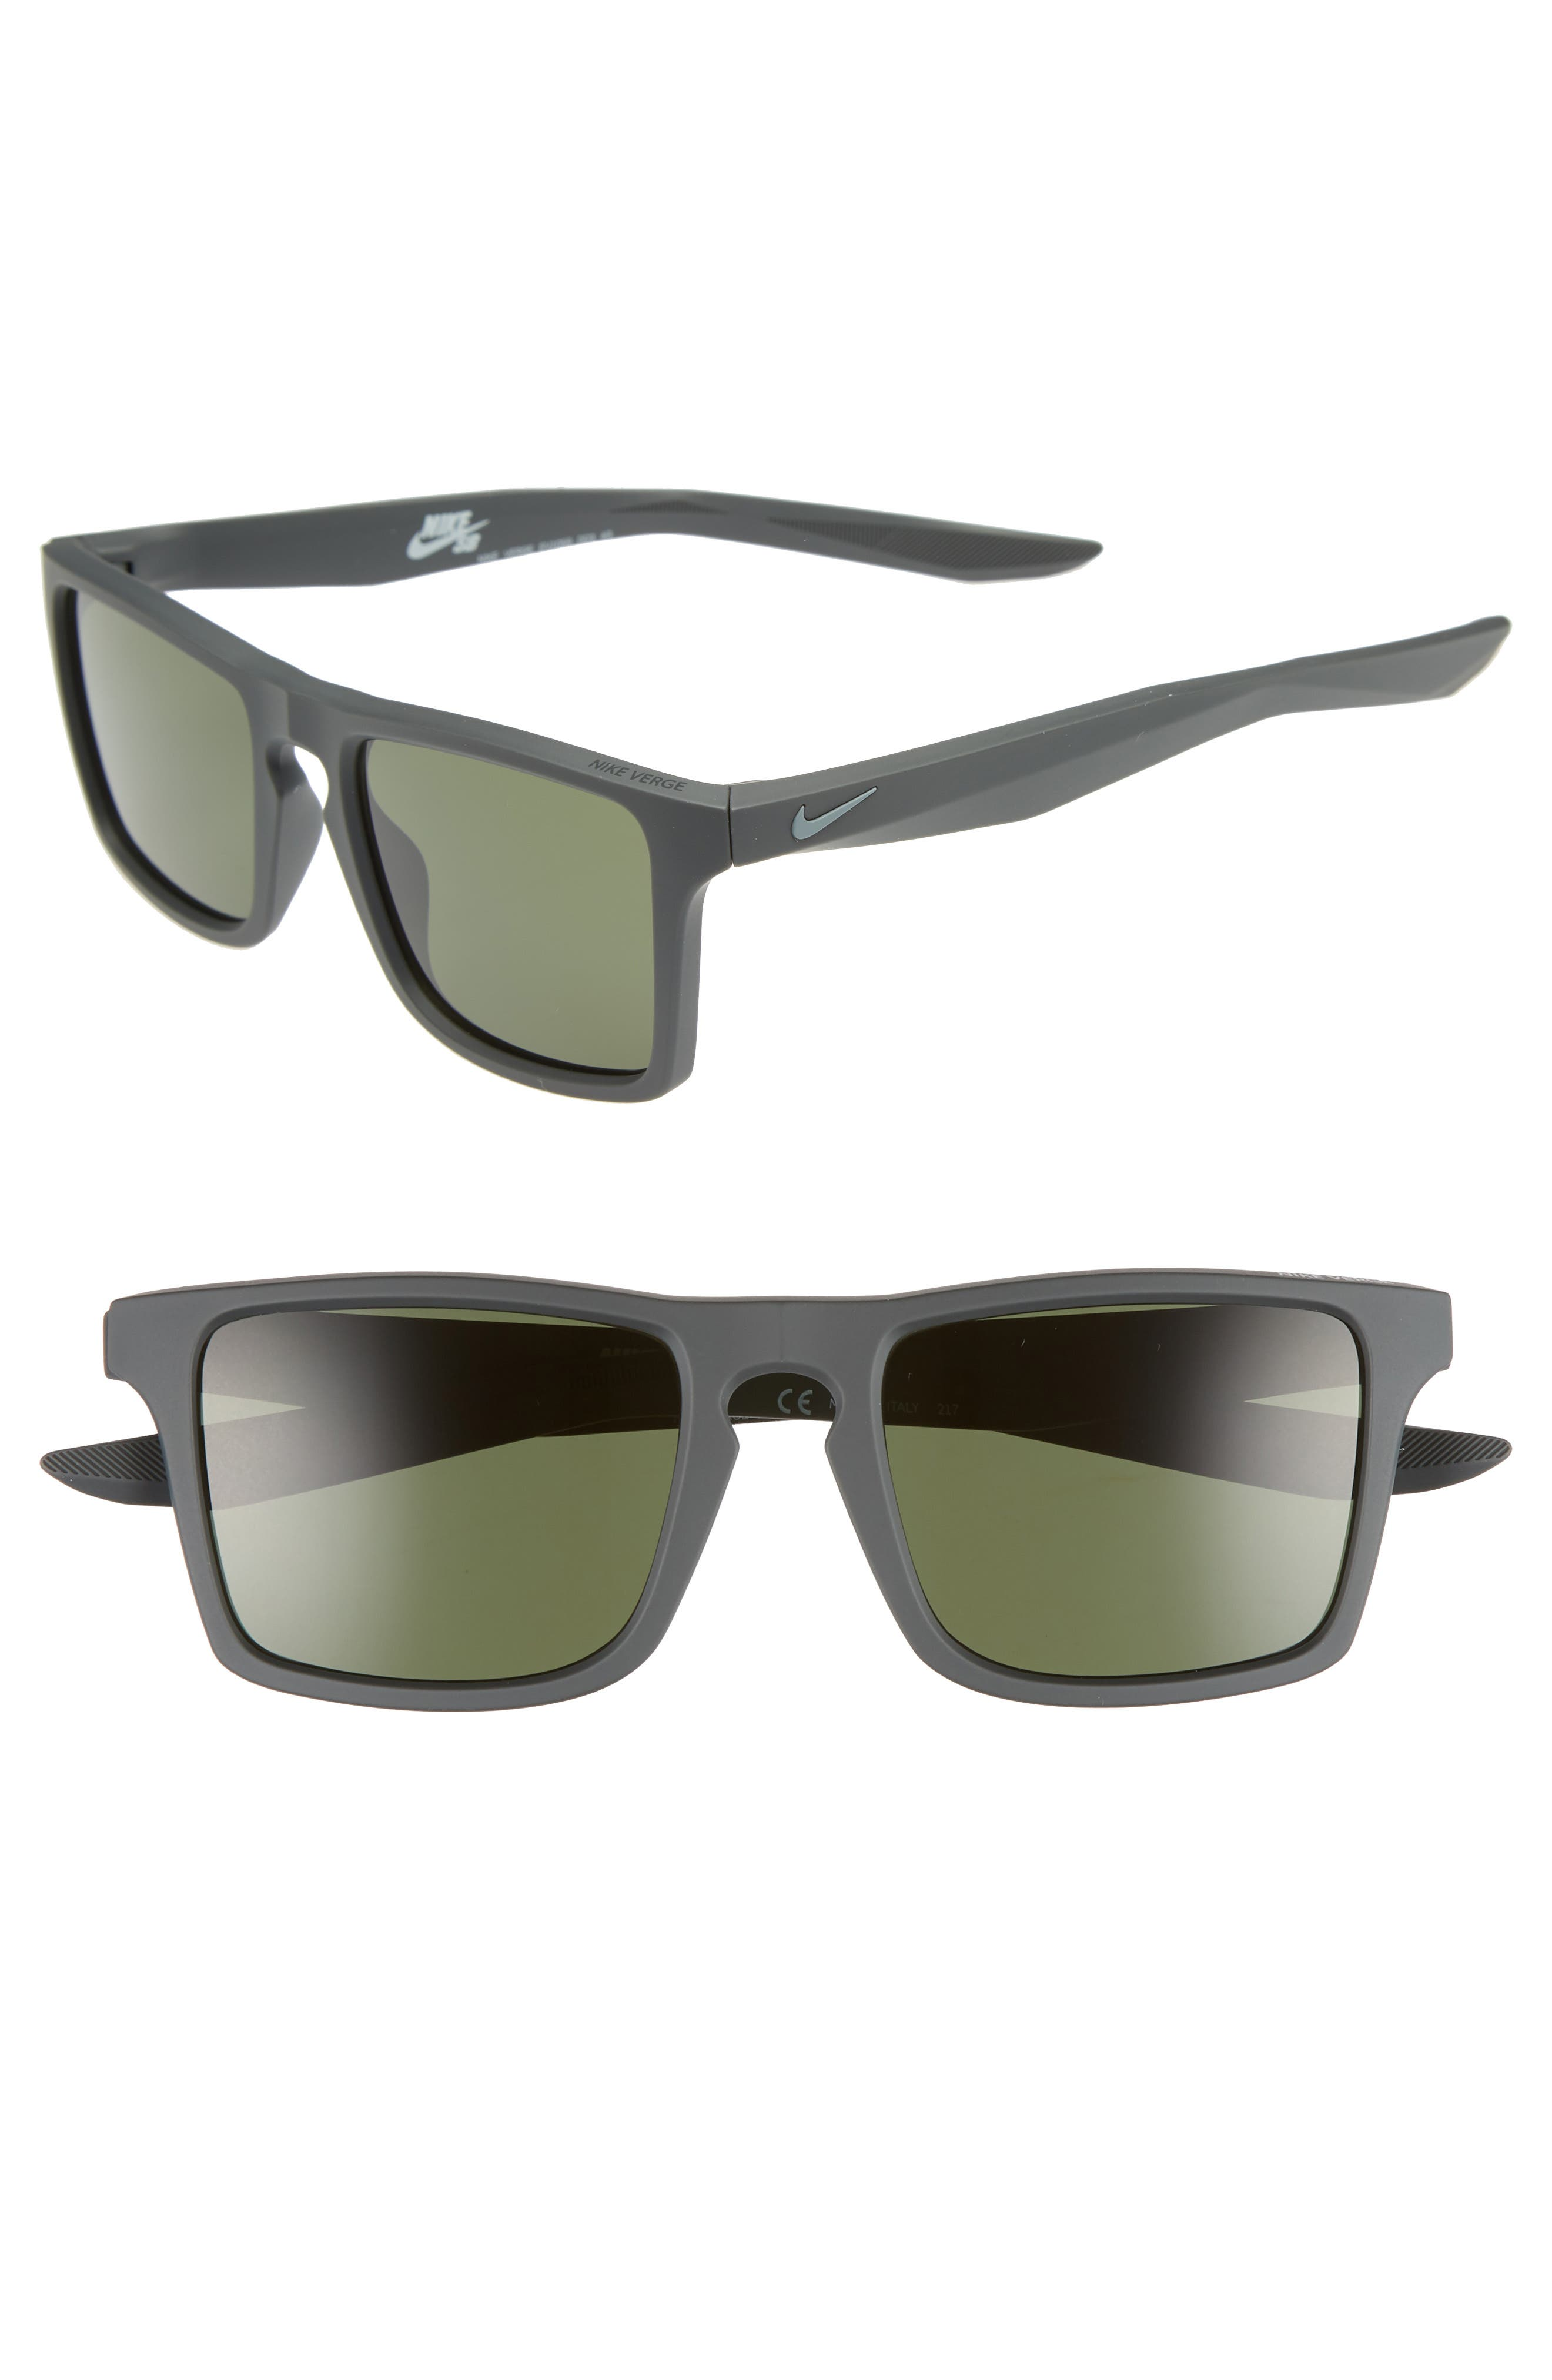 Verge 52mm Sunglasses,                         Main,                         color, Anthracite/ Cool Grey/ Green